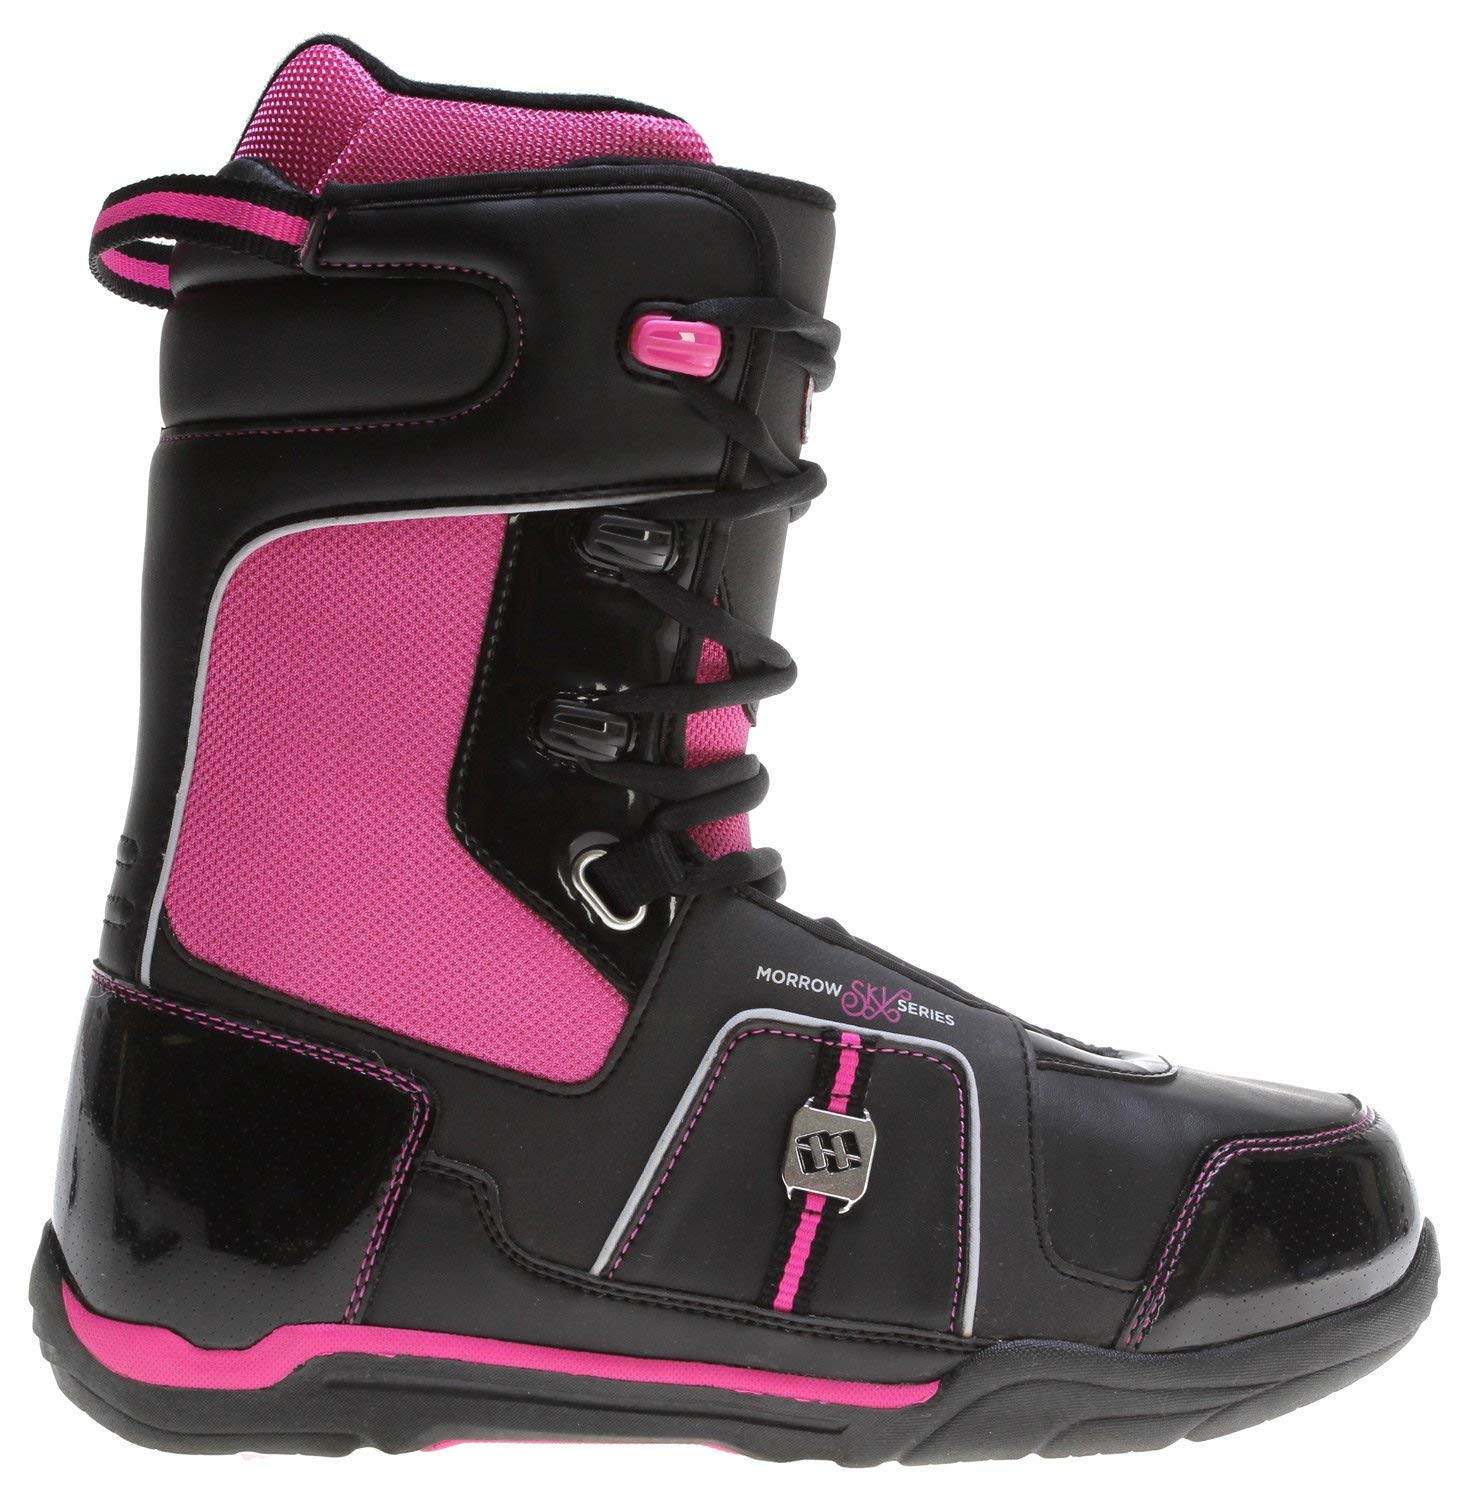 a80138090eb Get Quotations · Morrow Sky Snowboard Boots Womens